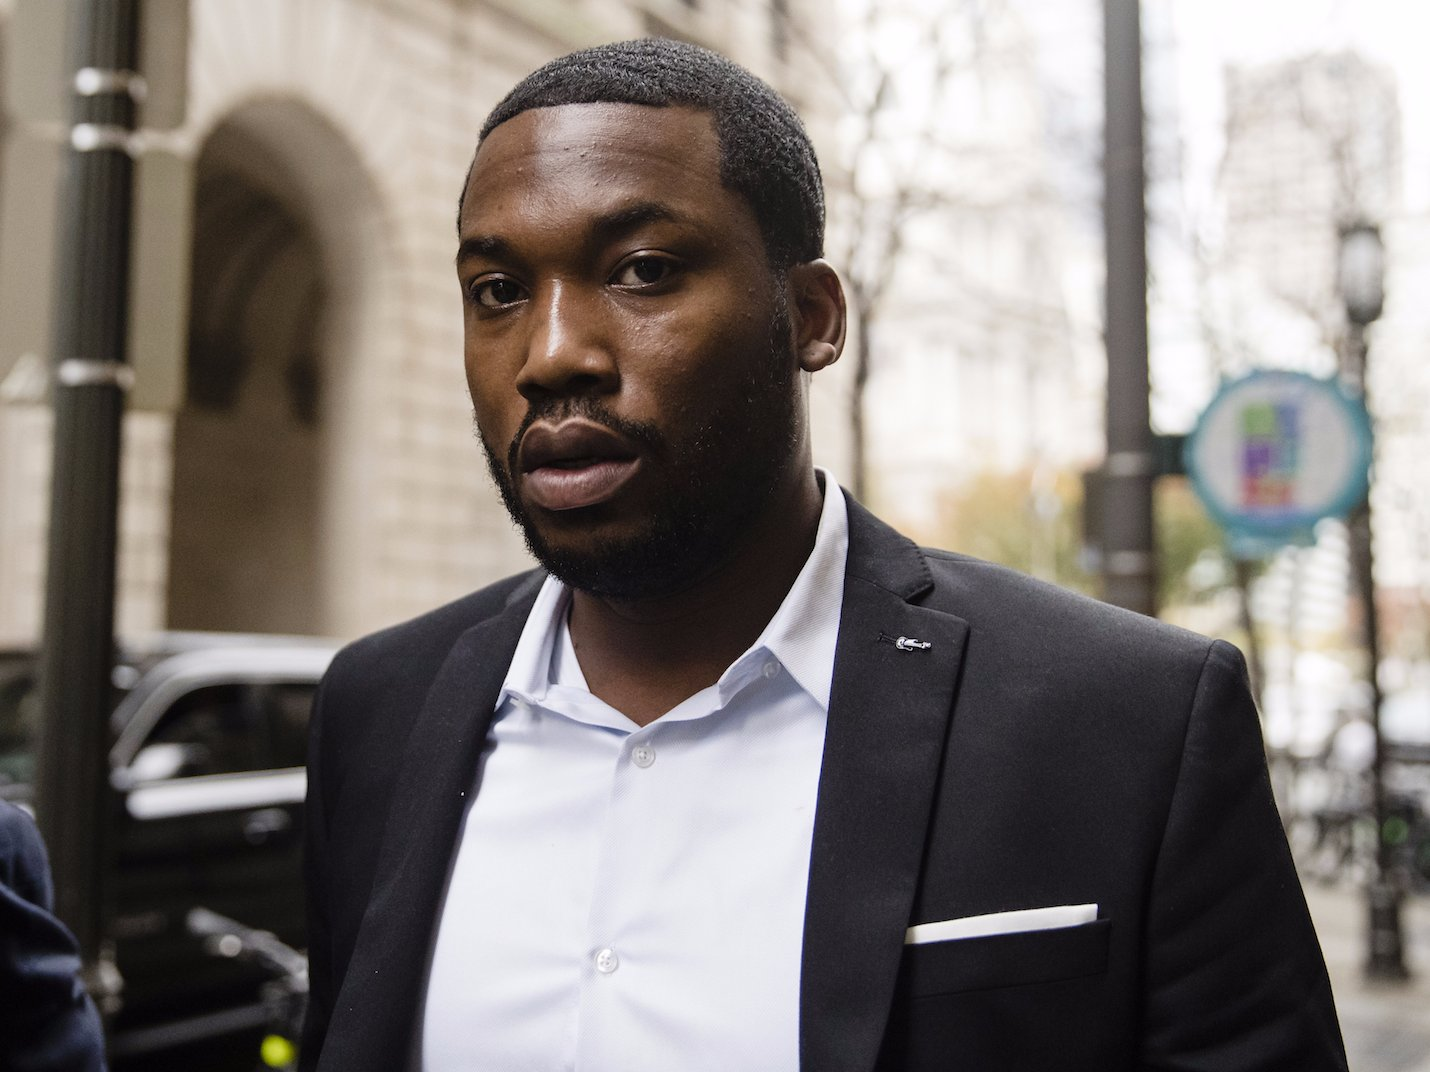 Meek Mill's Lawyer Claims Judge Asked Rapper To Leave Roc Nation & Sign With Her Friend